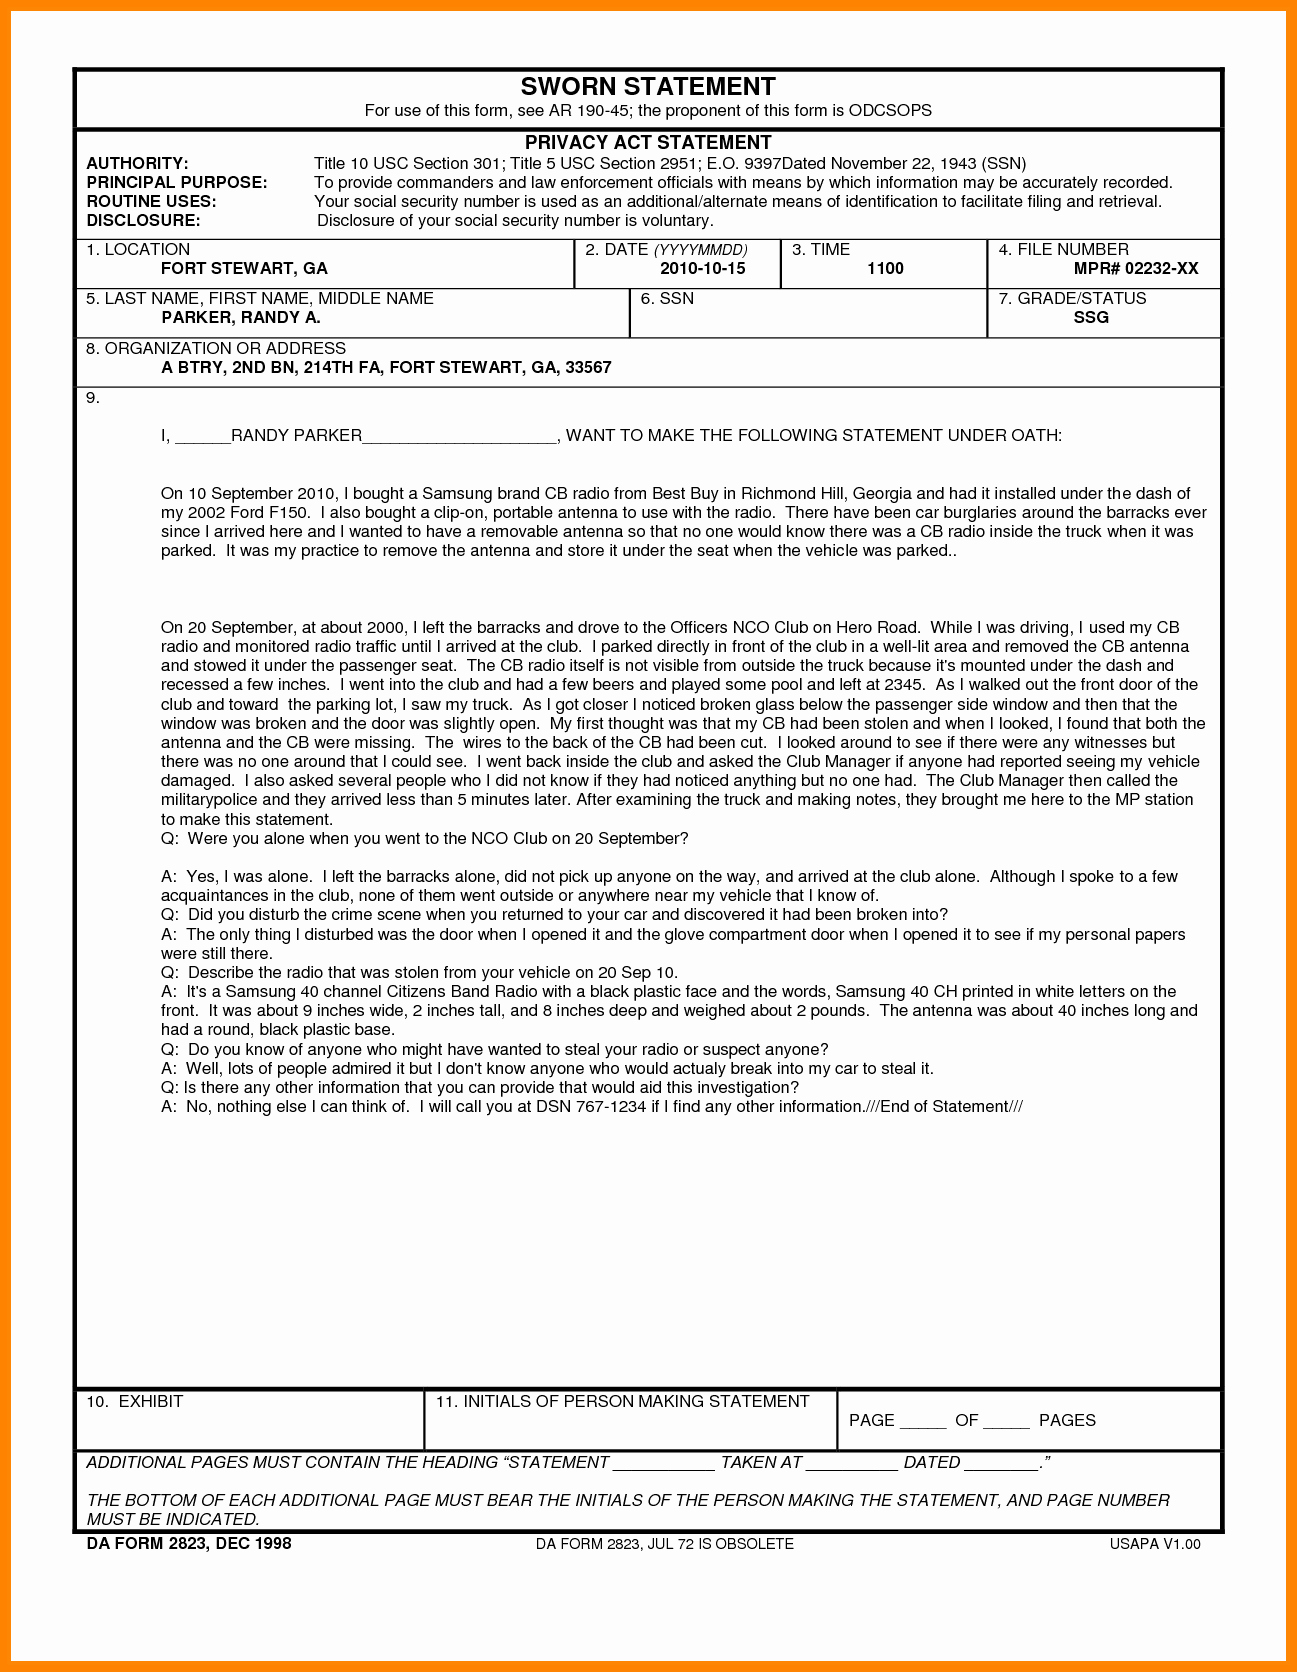 Signed Statement Example Luxury 8 Us Army Sworn Statement Example